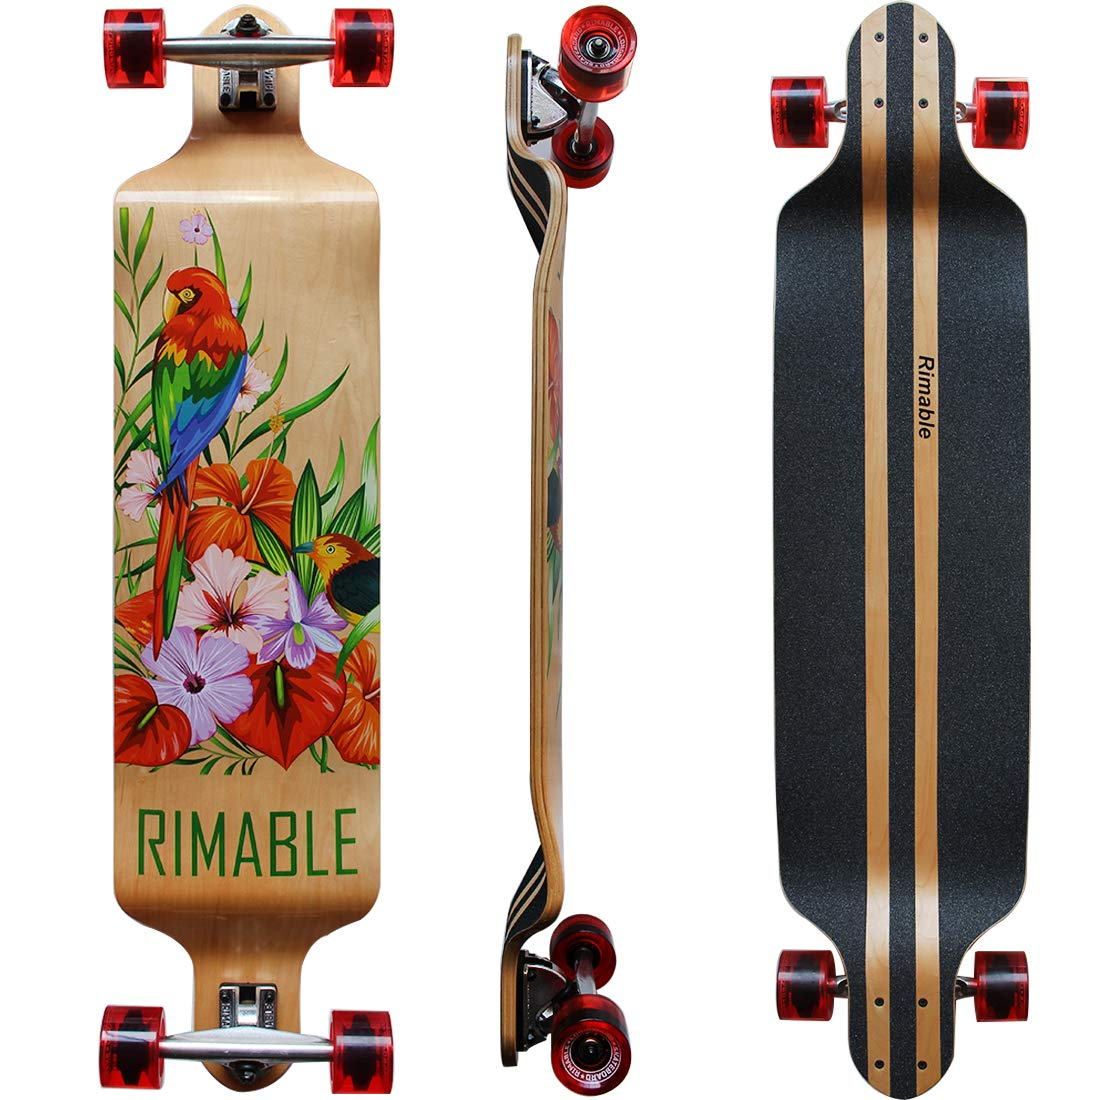 RIMABLE Canadian Maple Drop Deck Longboard TRANSPARENTRED